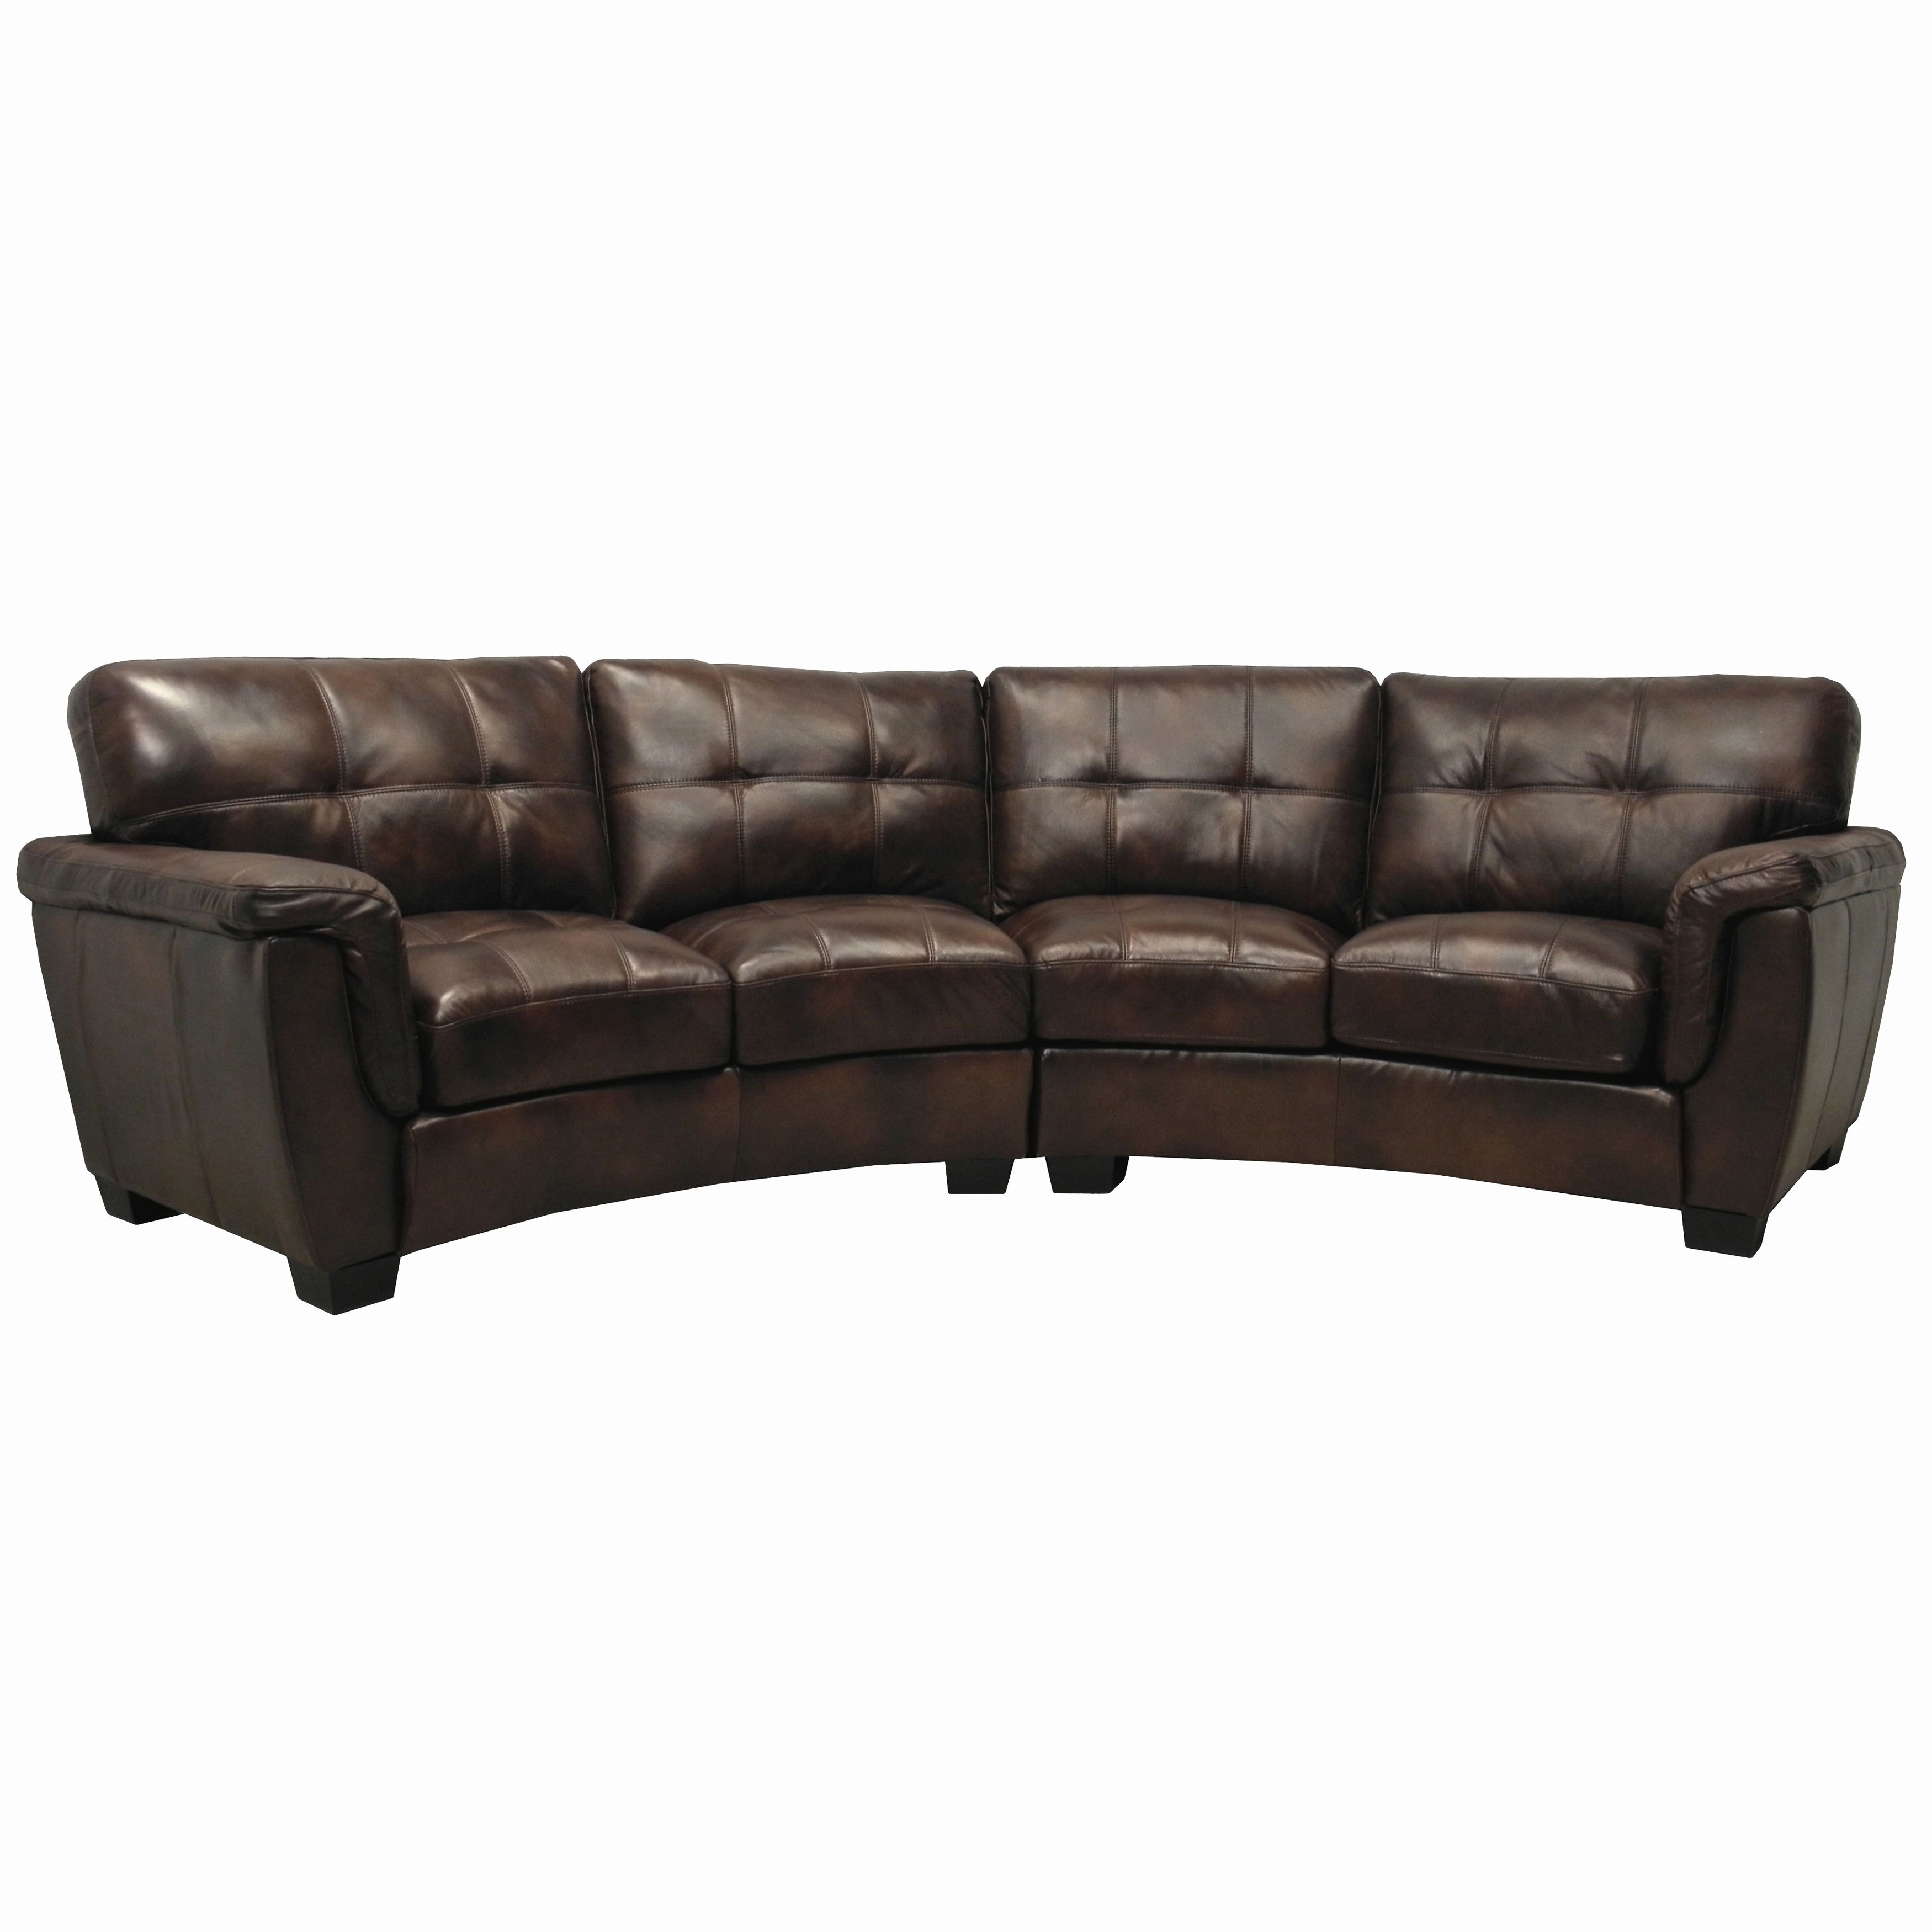 products set jesse sofas afurniturecompany newberry curved loveseats and curve pepper loveseat collections furnlander sofa